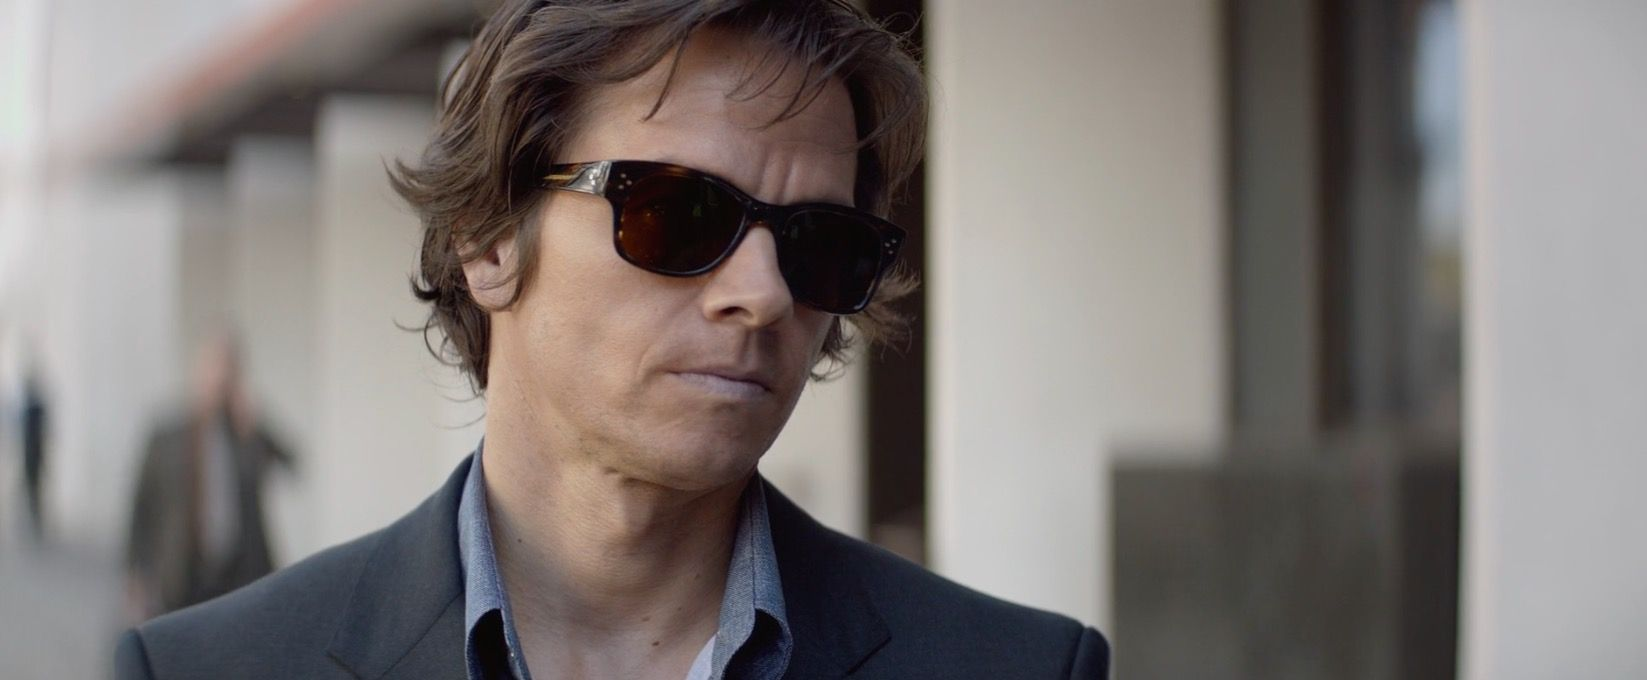 5ef7850c0c Oliver Peoples 5242S Jannsson sunglasses worn by Mark Wahlberg in THE  GAMBLER (2014) @oliverpeoples